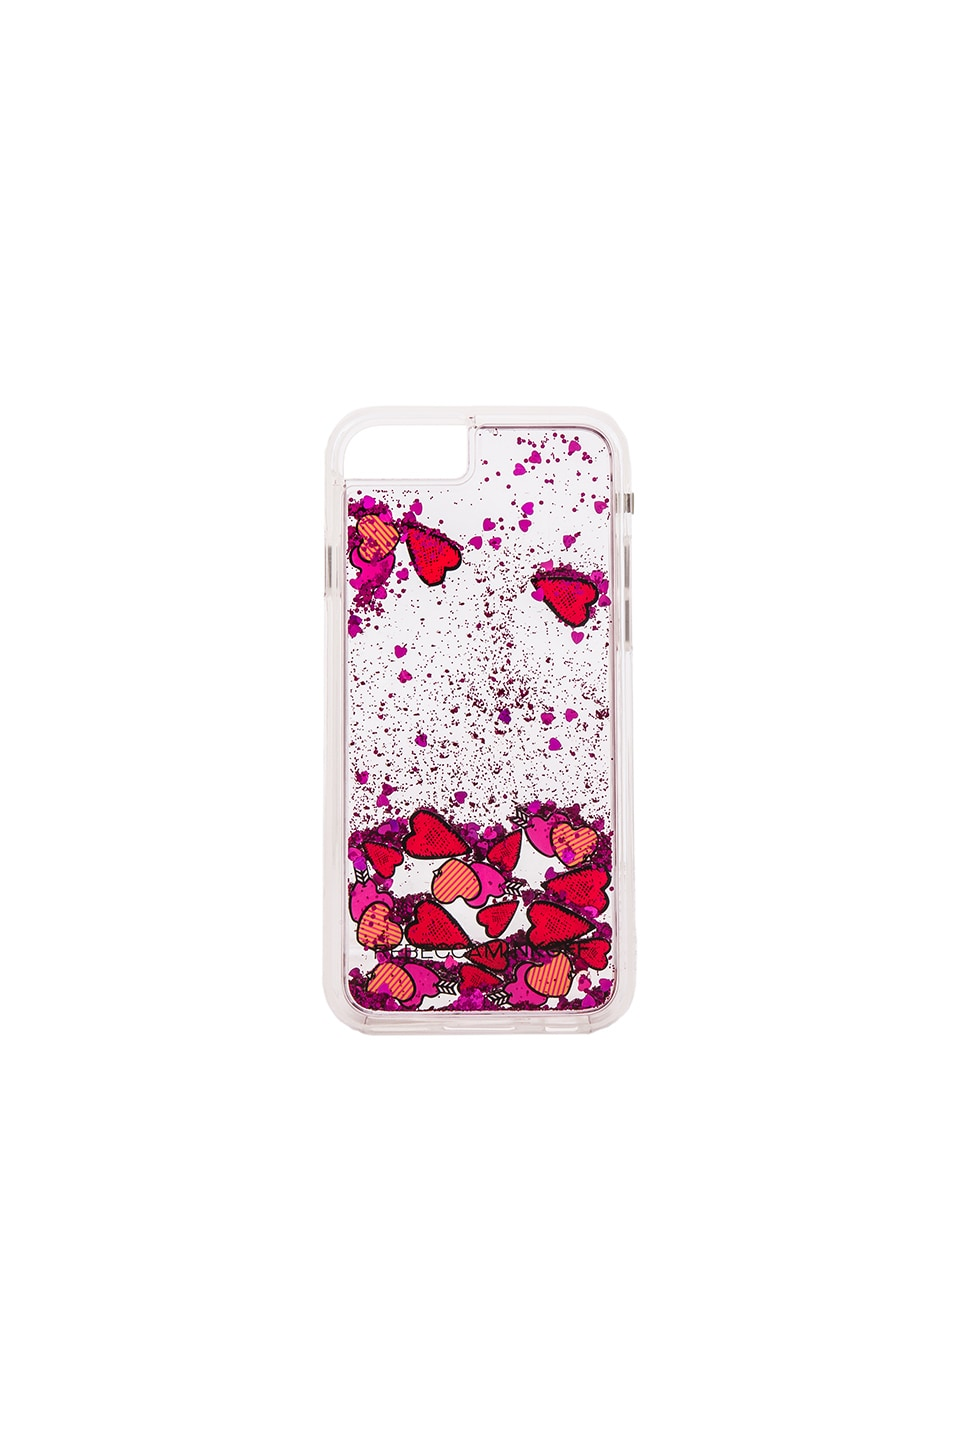 Rebecca Minkoff Novelty Waterfall iPhone 6/6s Case in Hearts